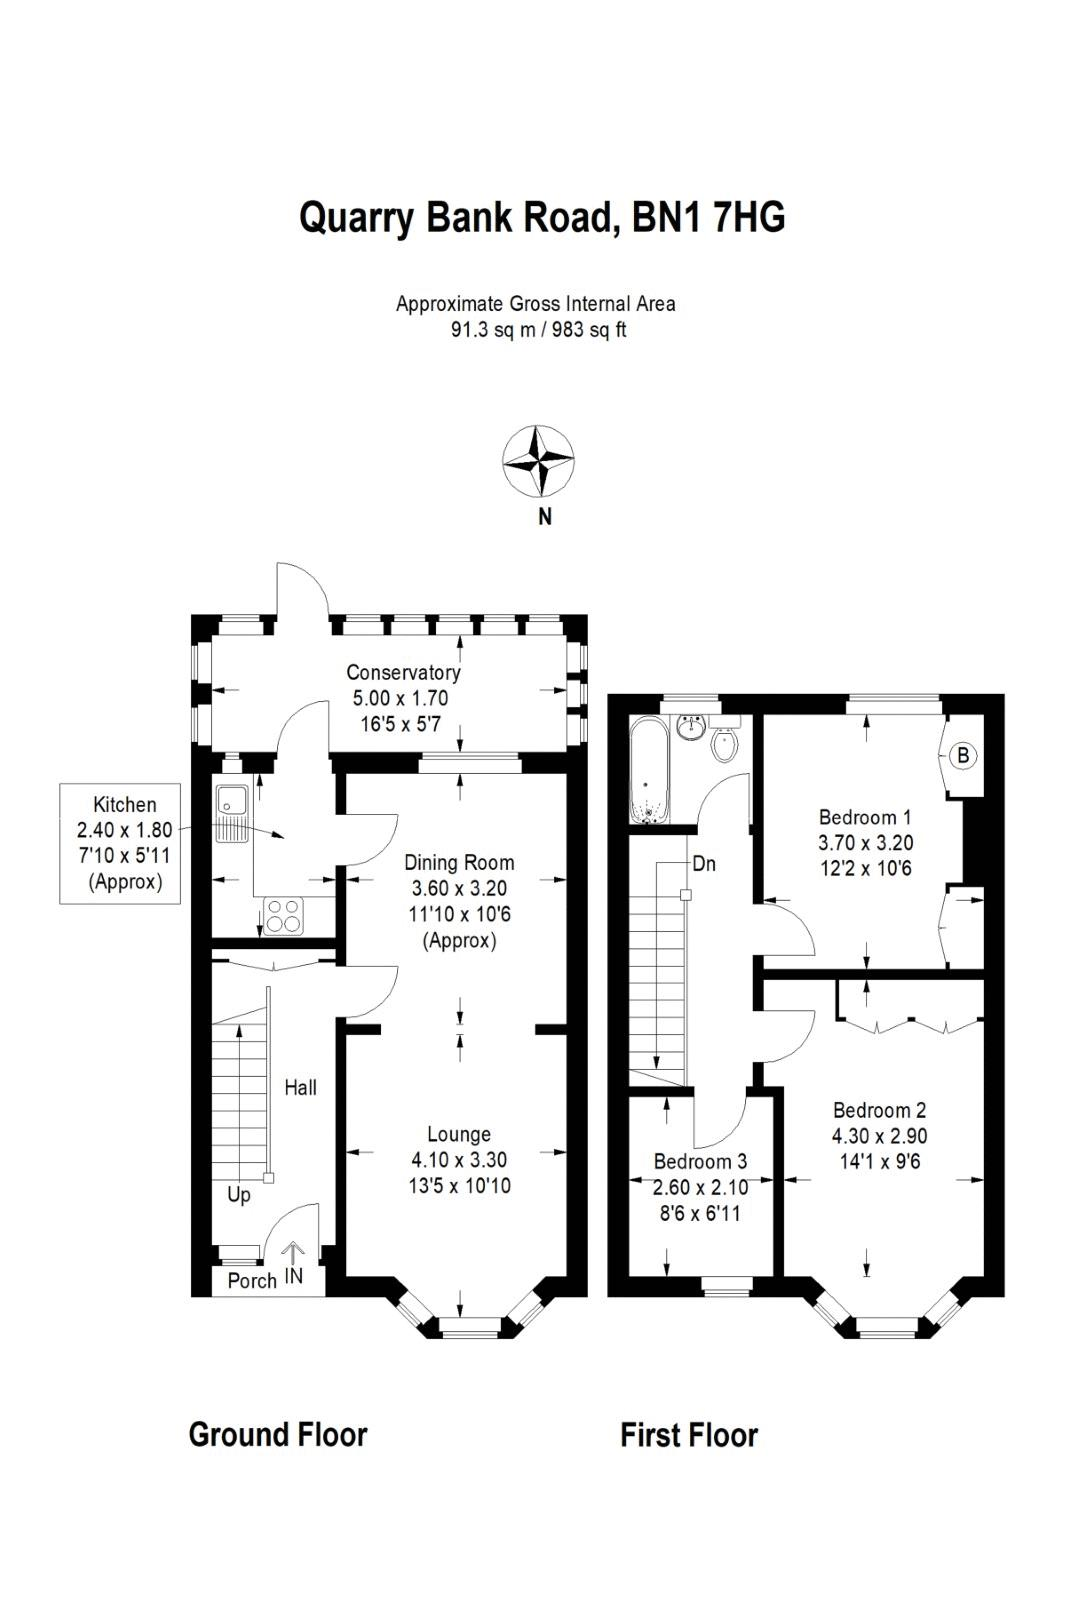 Floor plans for Quarry Bank Road, Brighton property for sale in Hollingdean, Brighton by Coapt